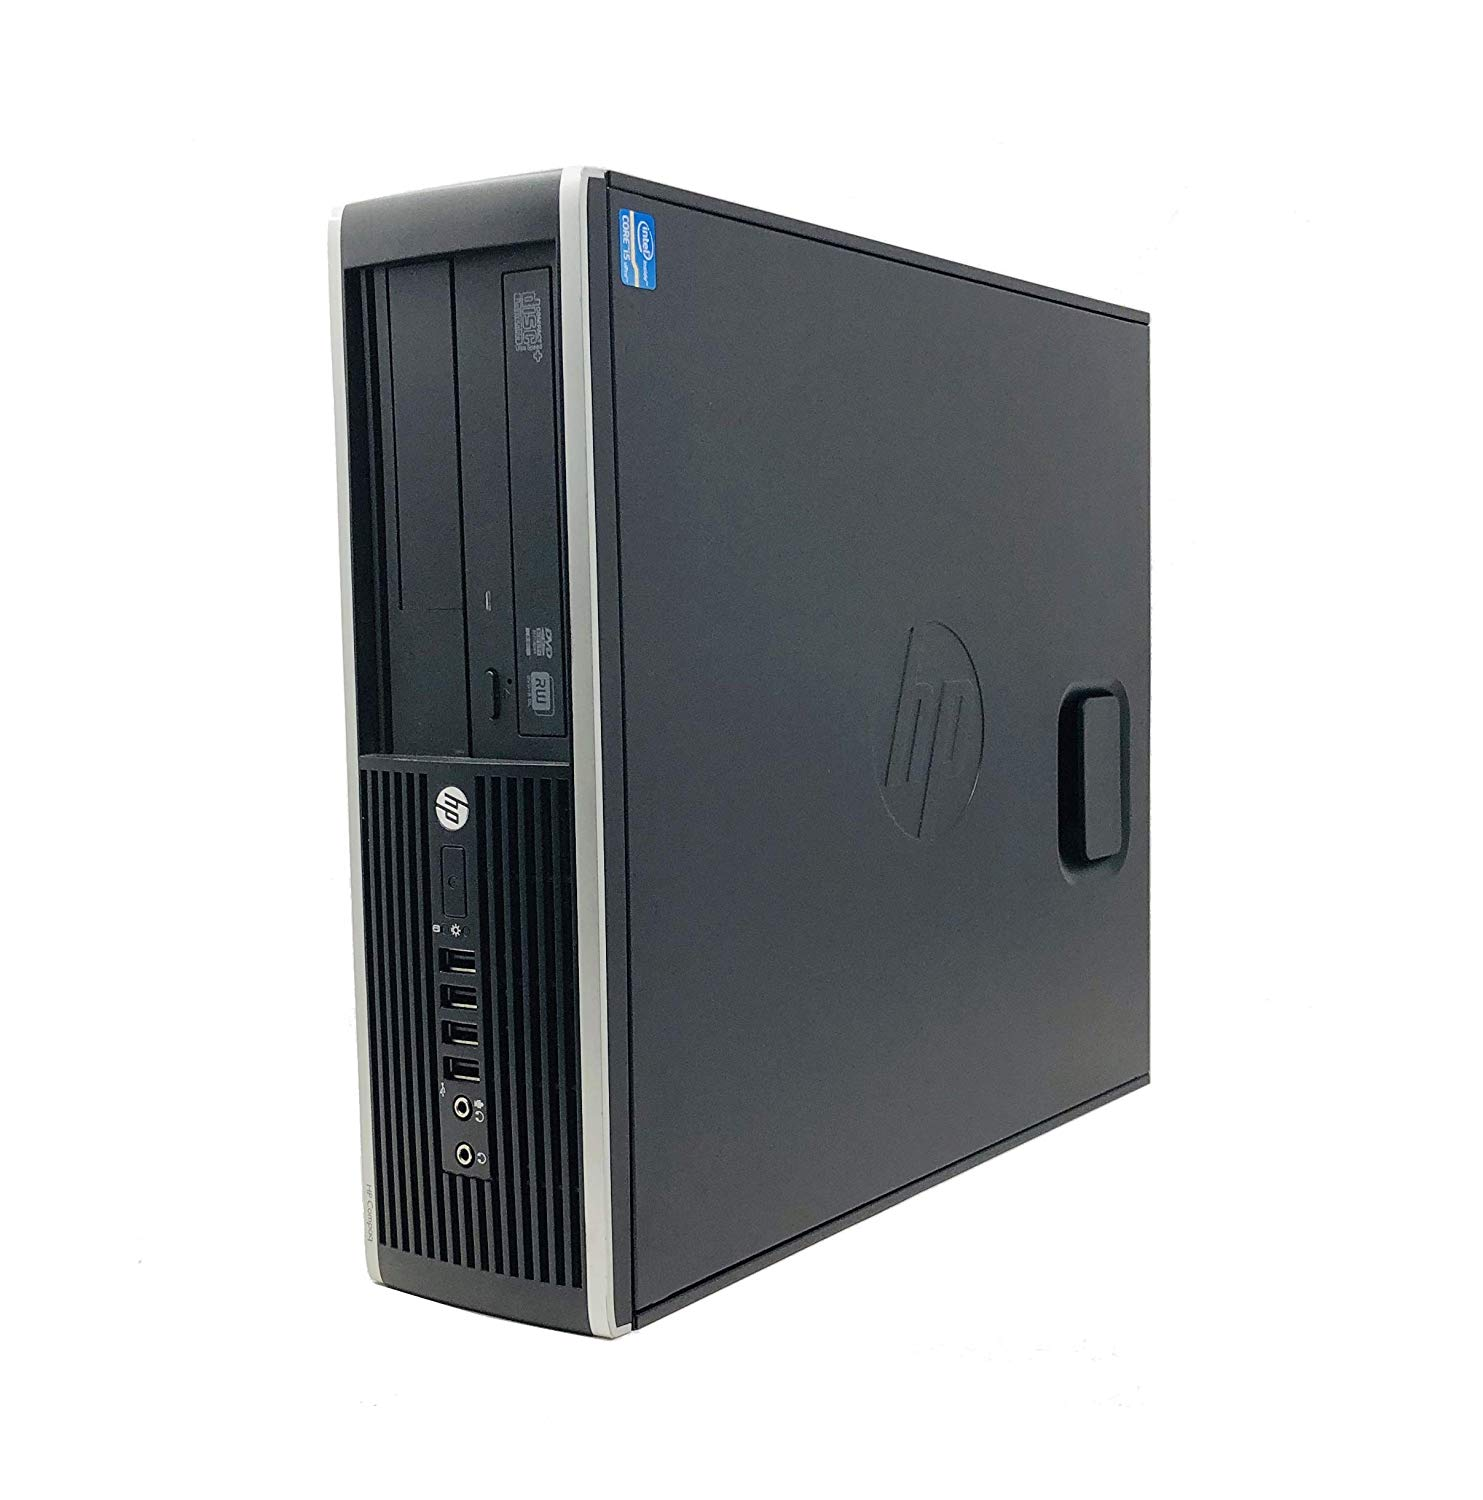 Hp Elite 8200 - Ordenador De Sobremesa (Intel  I5-2400, 8GB De RAM, Disco SSD De 240GB , Windows 10 HOME  ) - (Reacondicionado)